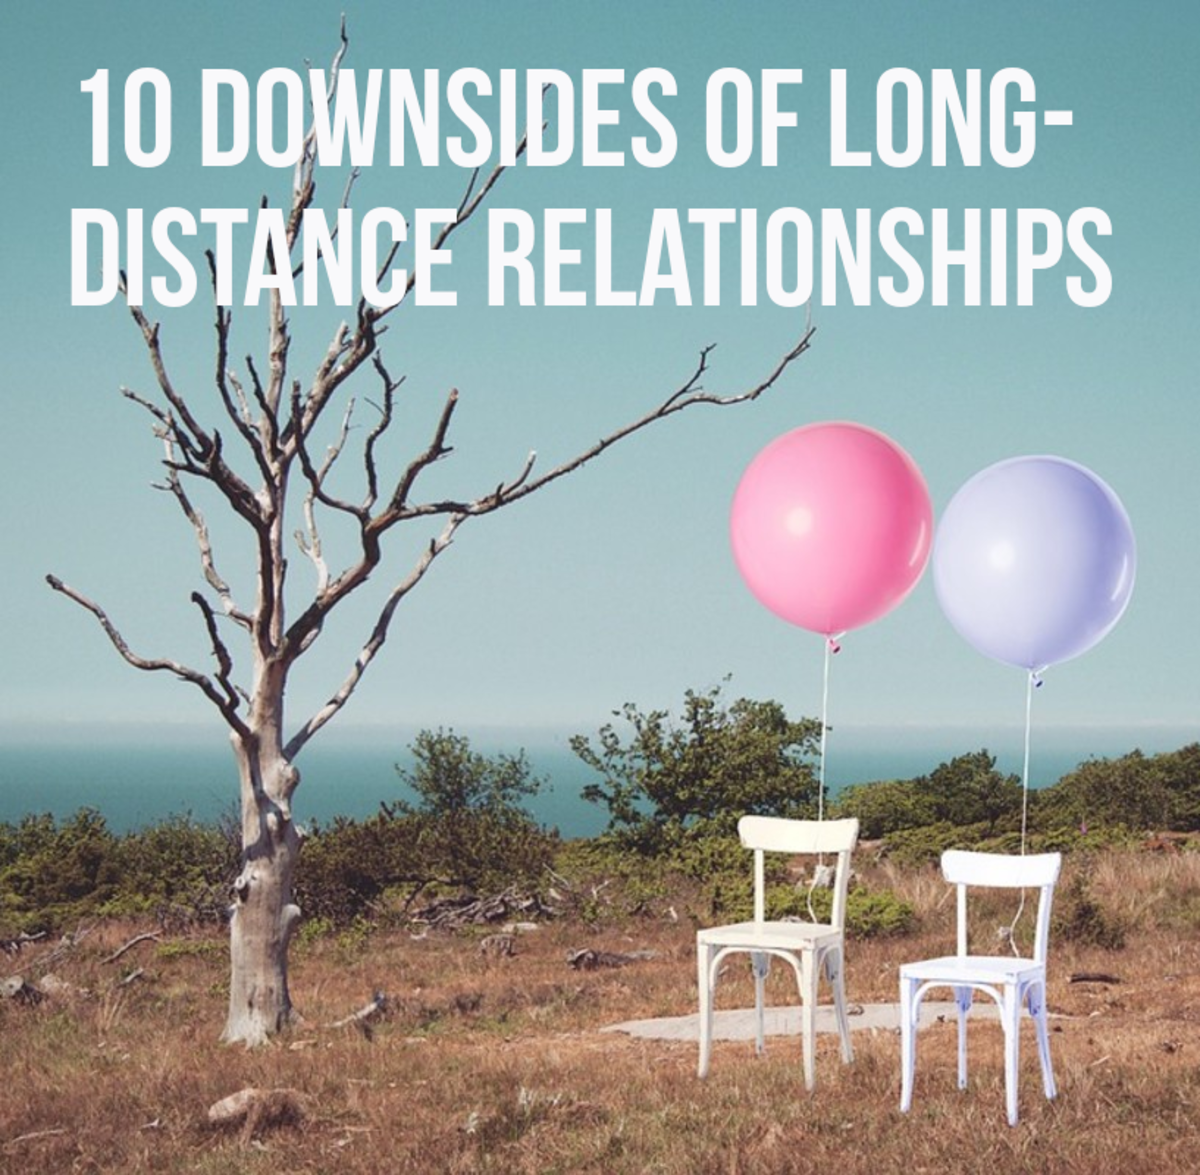 Read on for my 10 negatives of long-distance relationships.